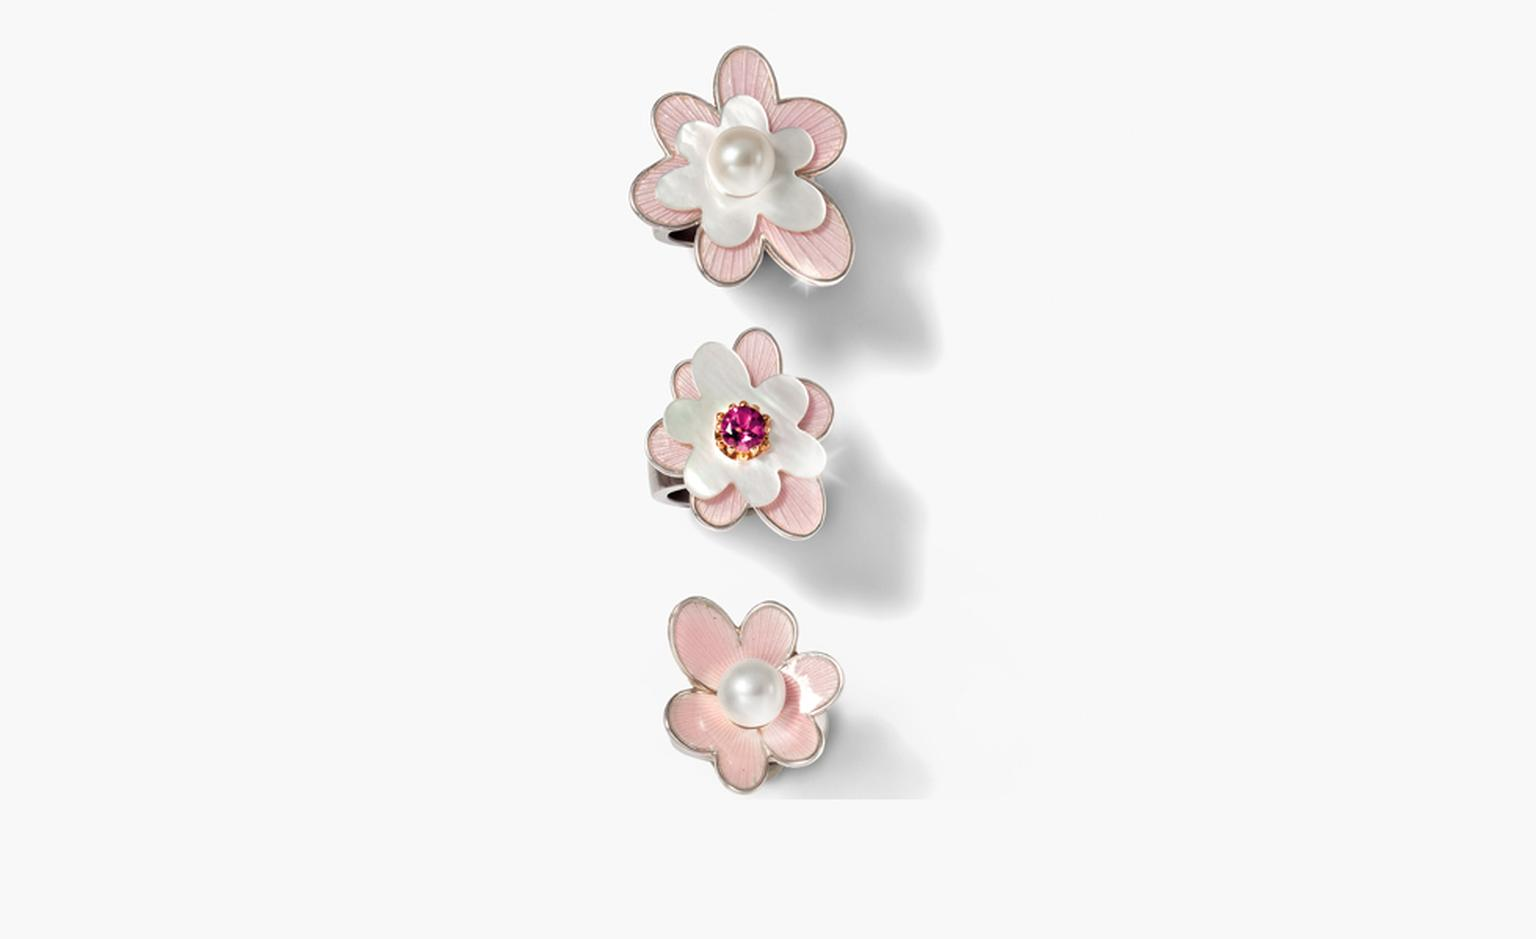 Charlotte Ehinger-Schwarz 1876. Pudrige Bluten. Stainless steel ring with fire enamel flower, mother of pearl flower and fresh water pearl, faceted pink tourmaline set in 18k red gold. All pieces sold separately. Prices start from £347.